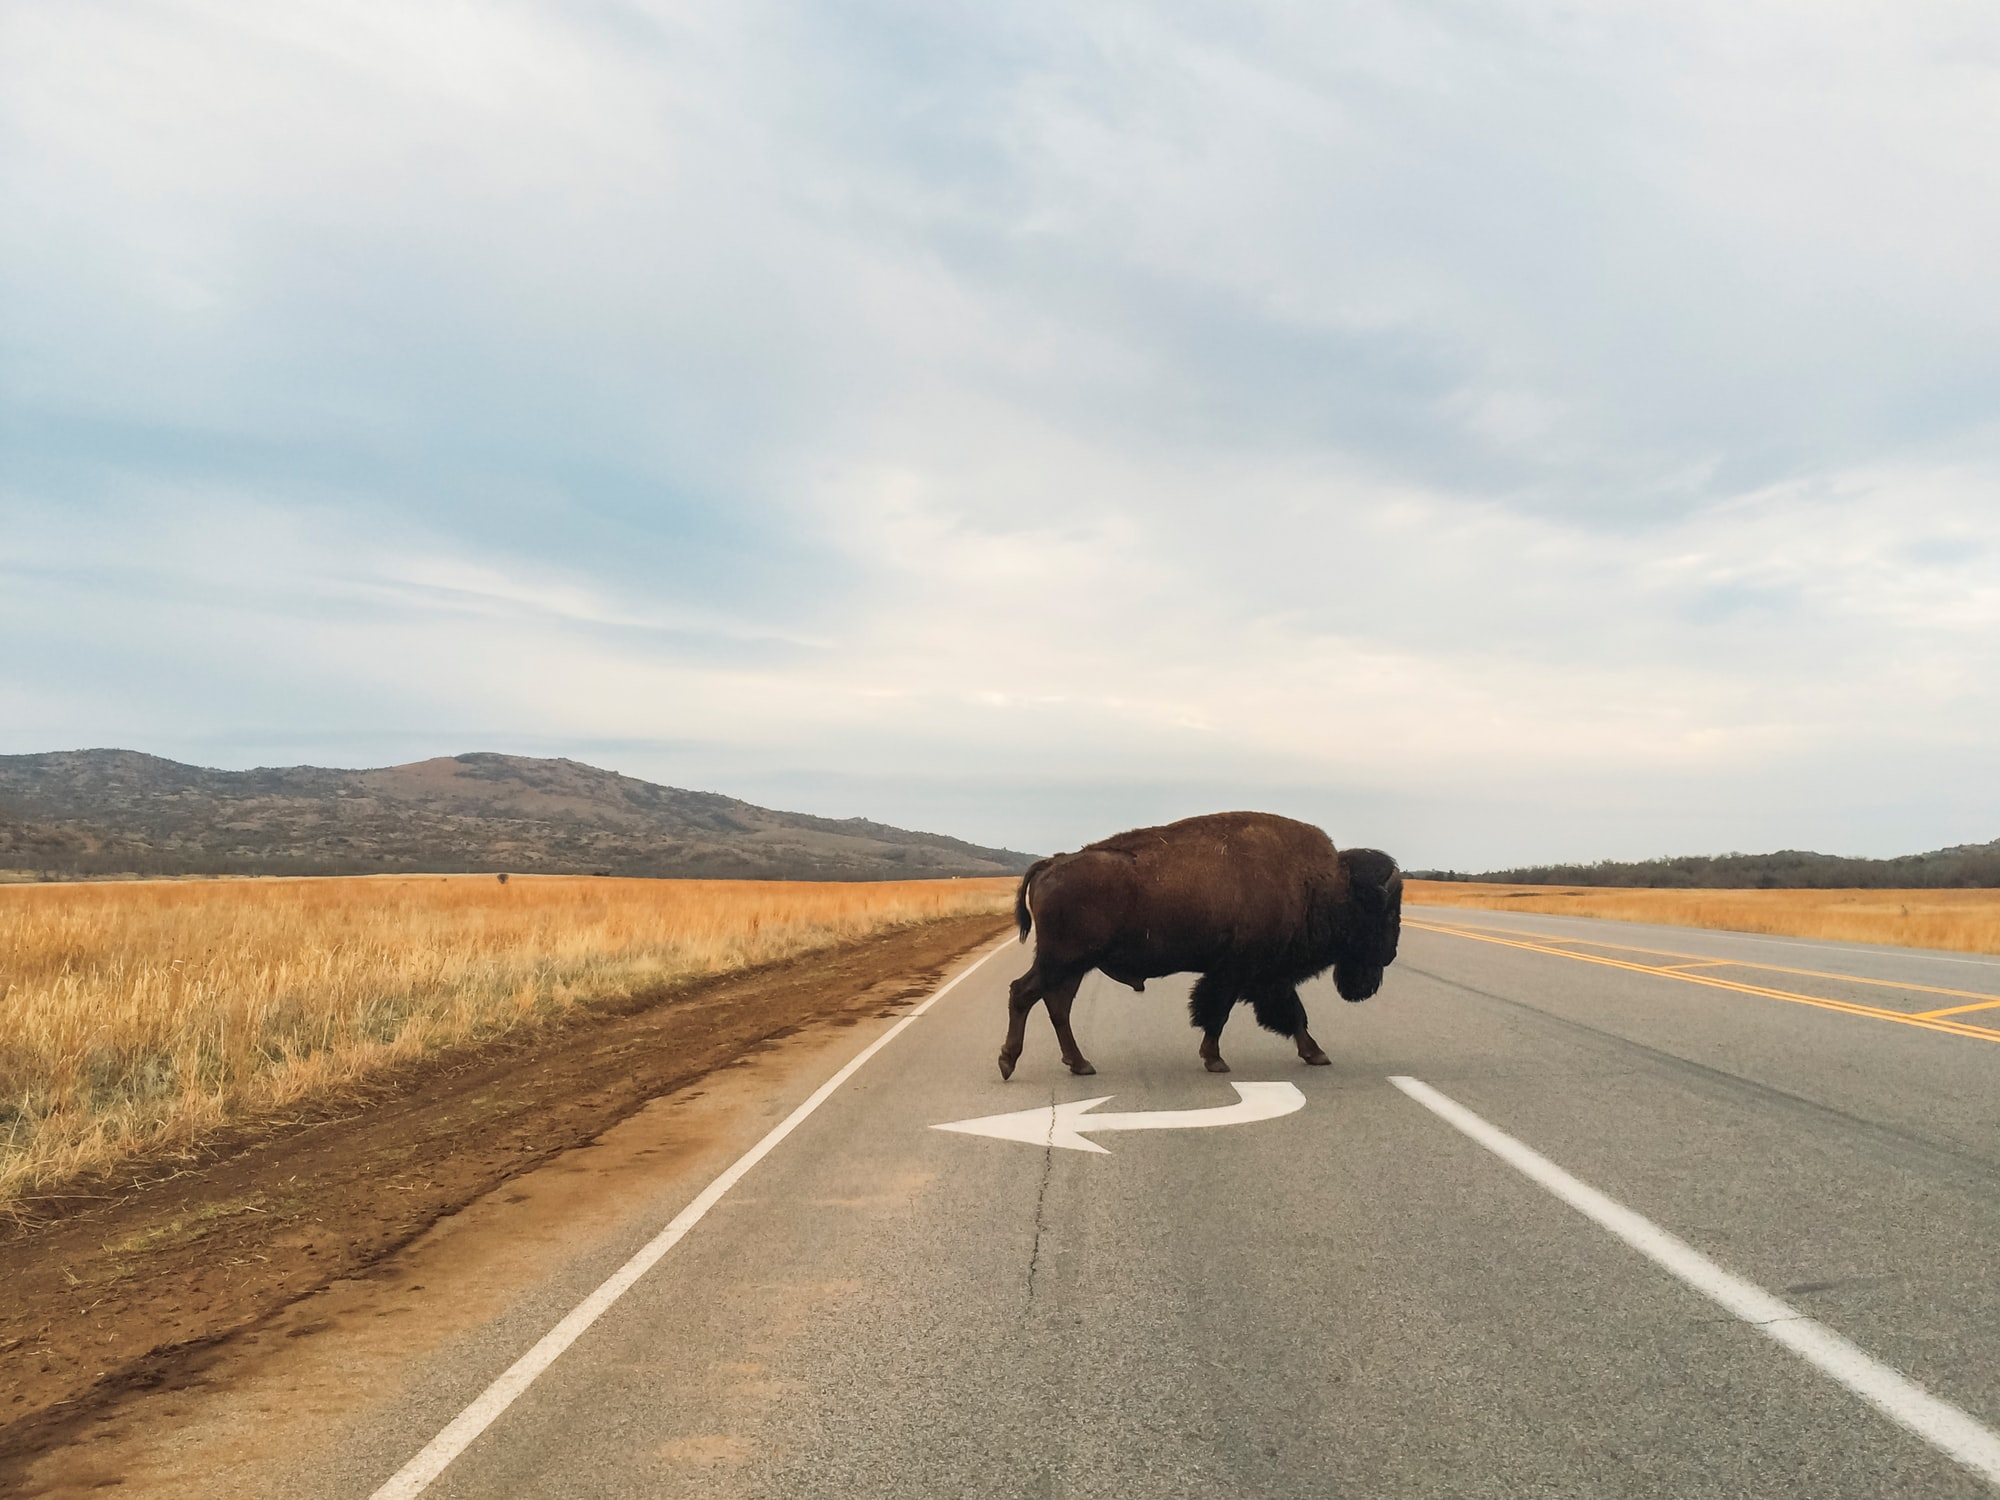 A bison crossing the road